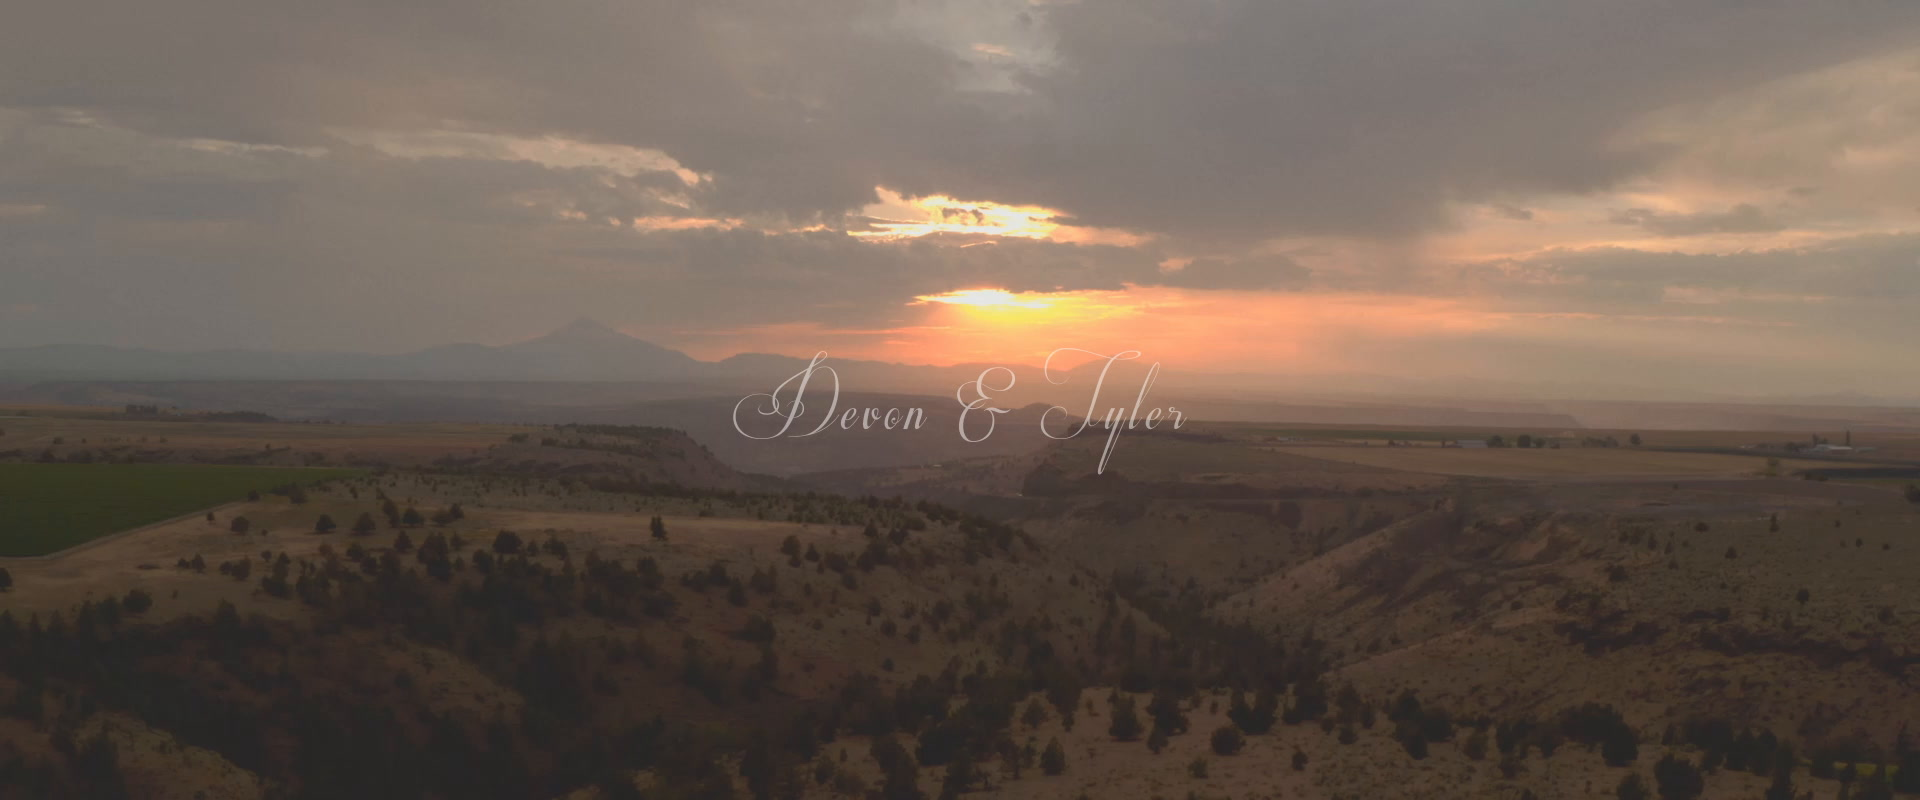 devon + tyler | Bend, Oregon | A country House